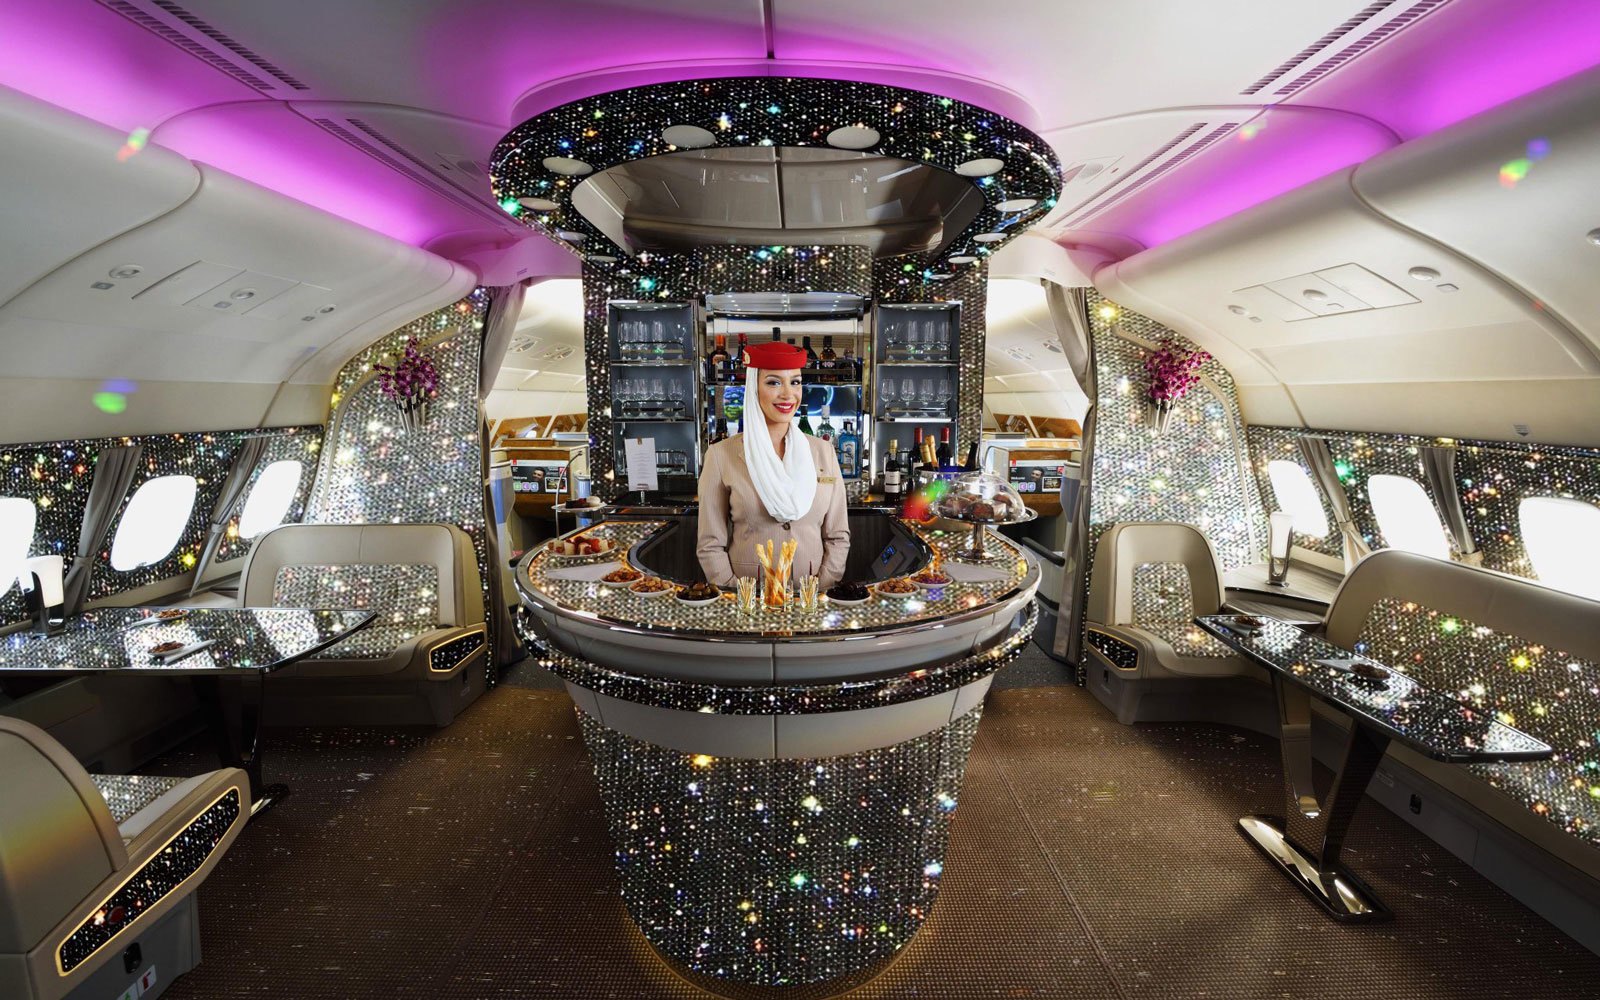 This is what Emirates' onboard bar would look like covered in 500,000 crystals